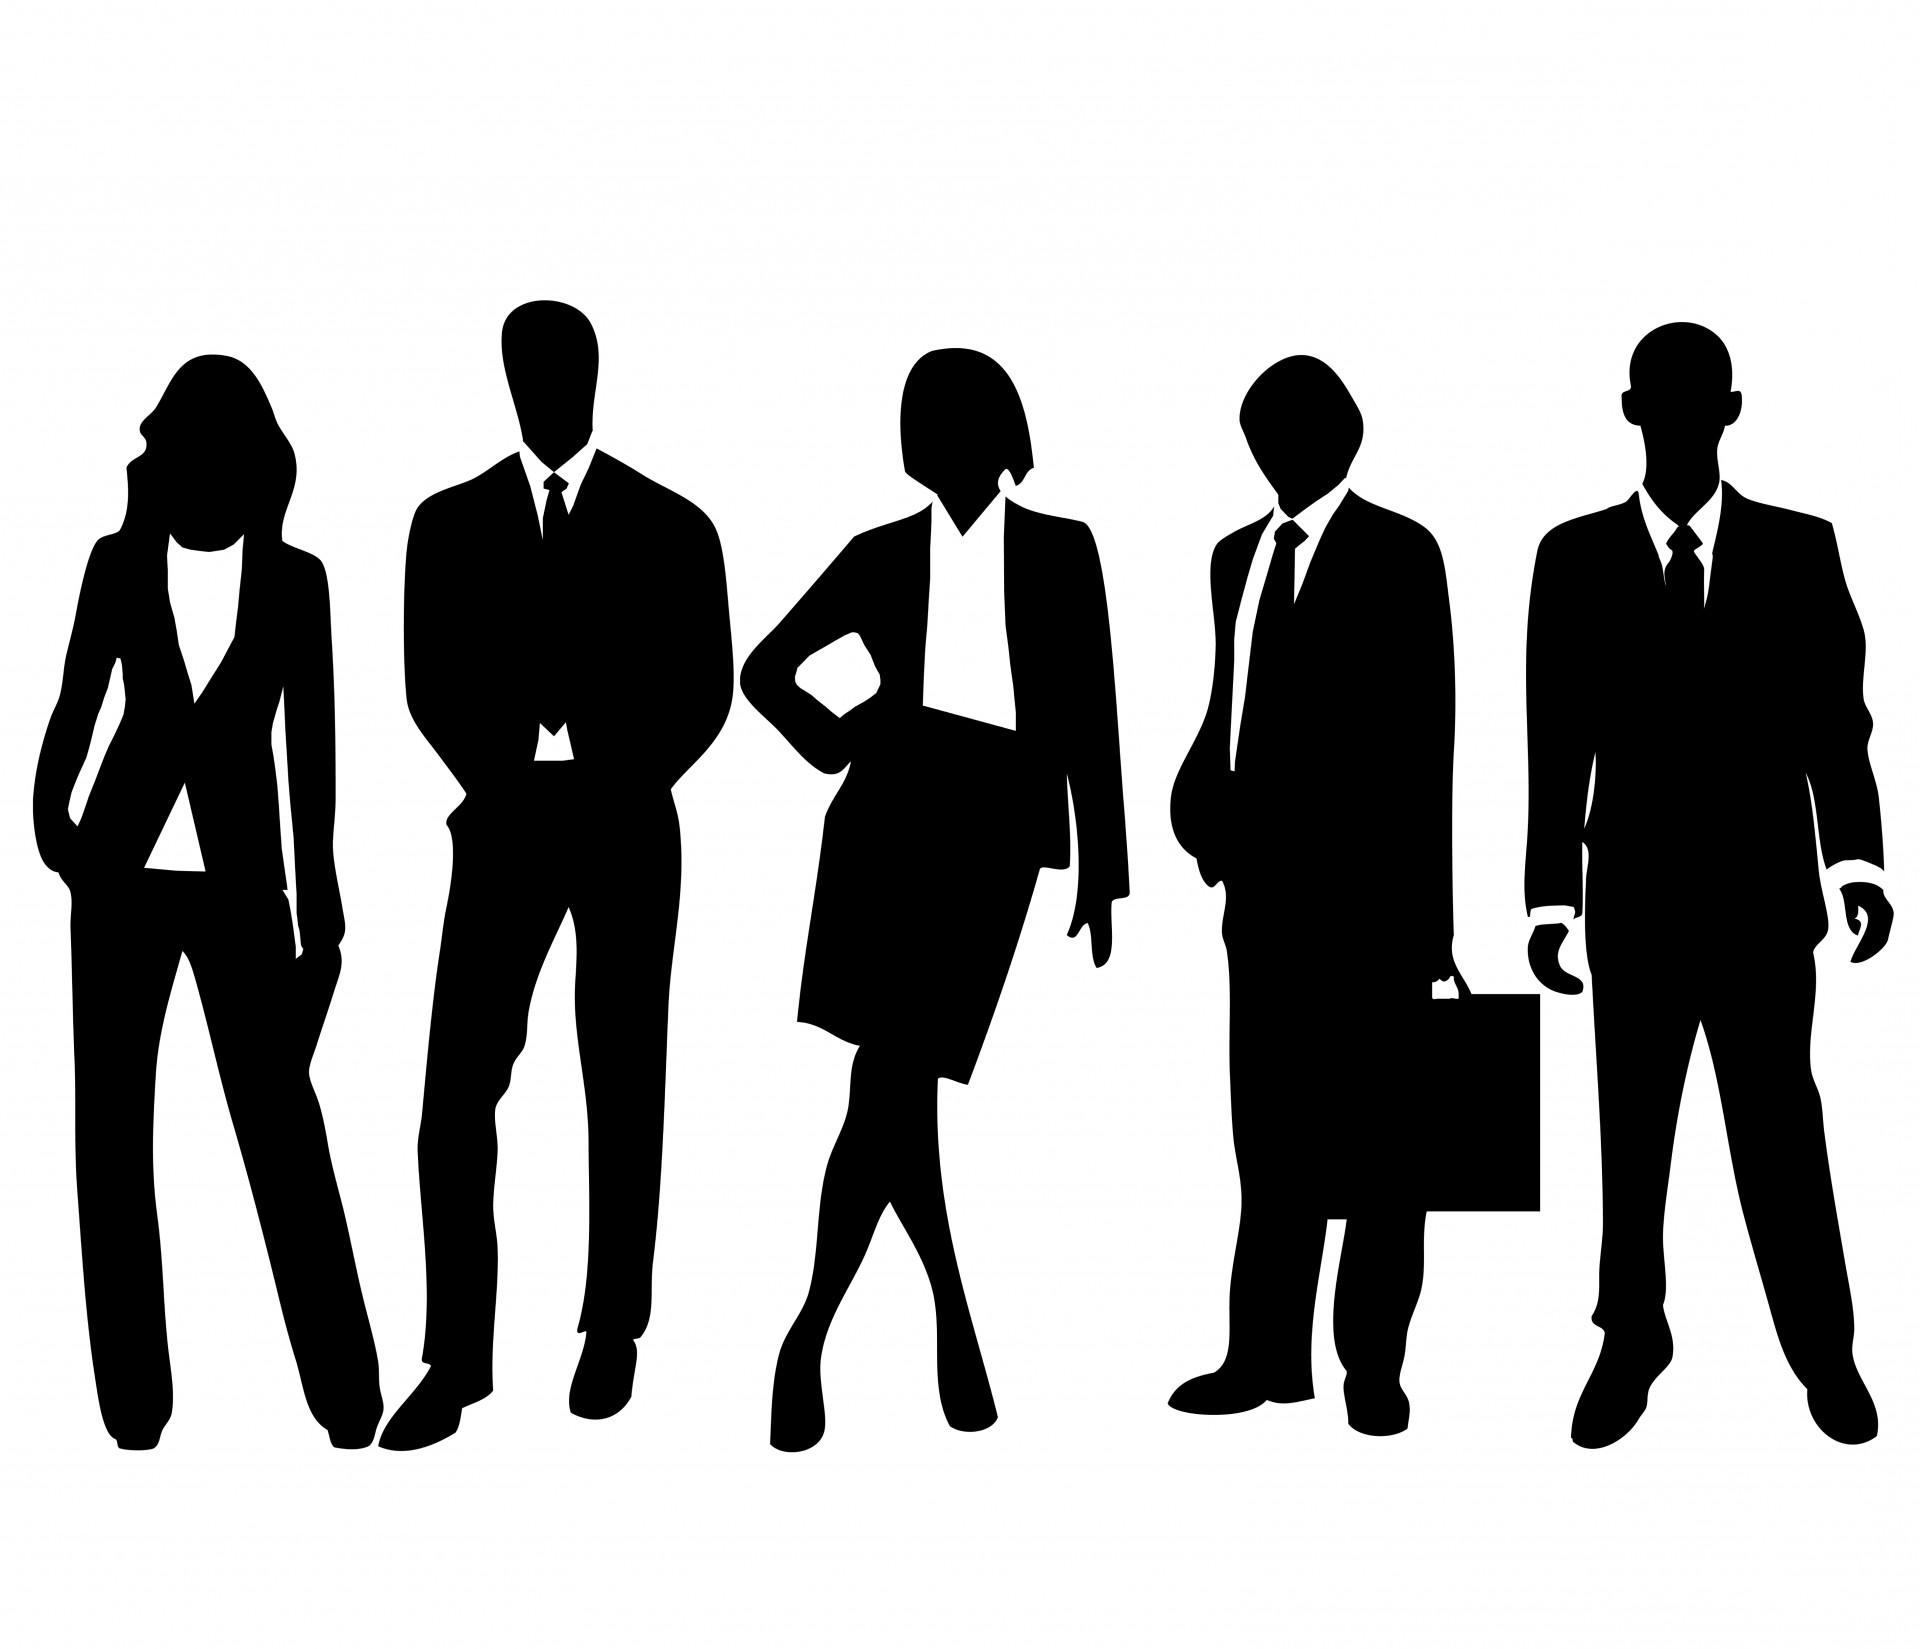 hight resolution of 1920x1649 best hd business clip art free clipart images drawing